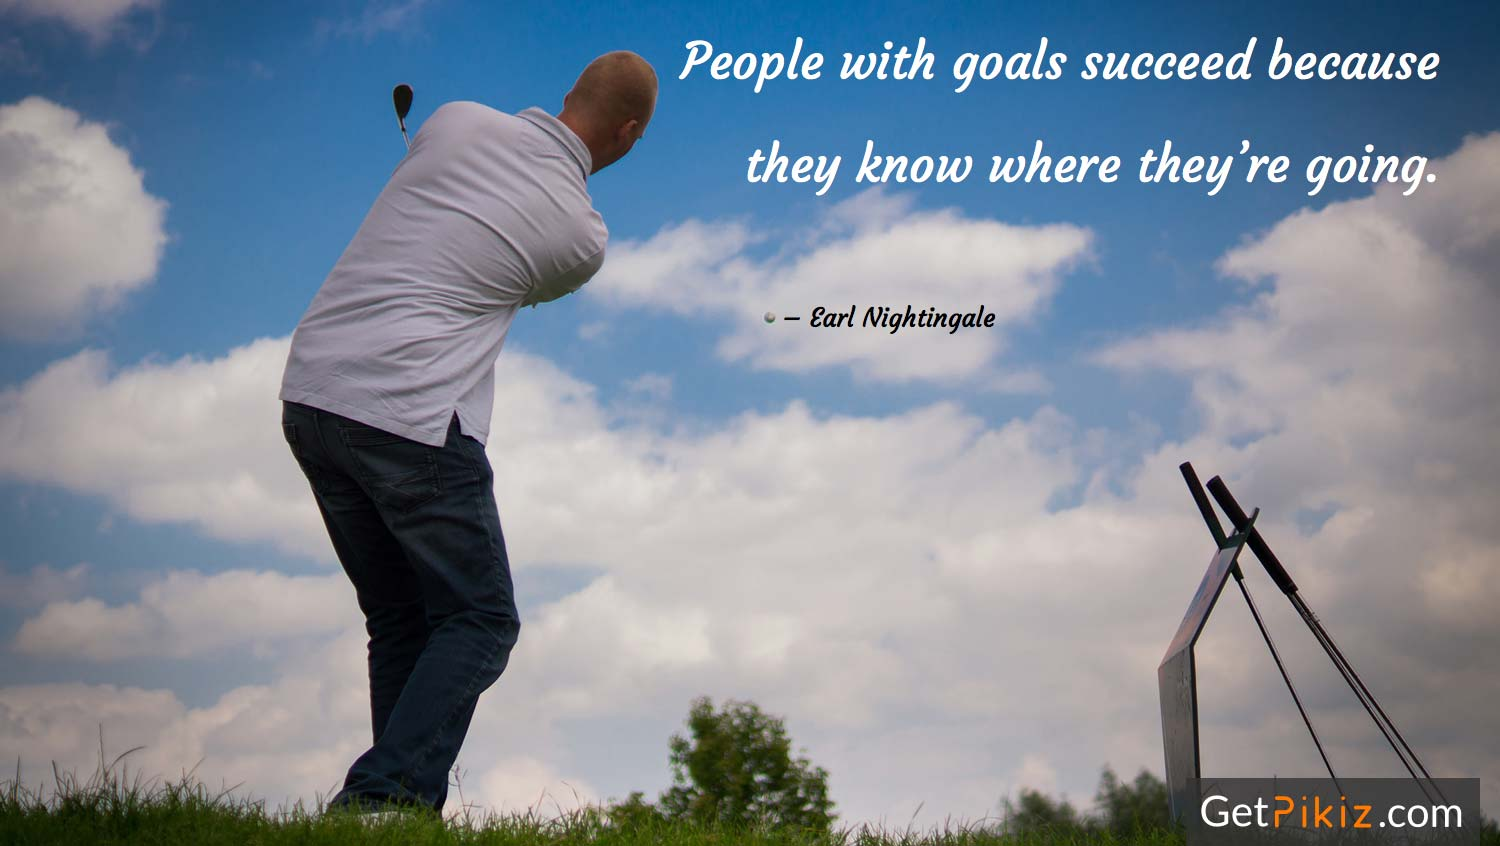 People with goals succeed because they know where they're going. – Earl Nightingale